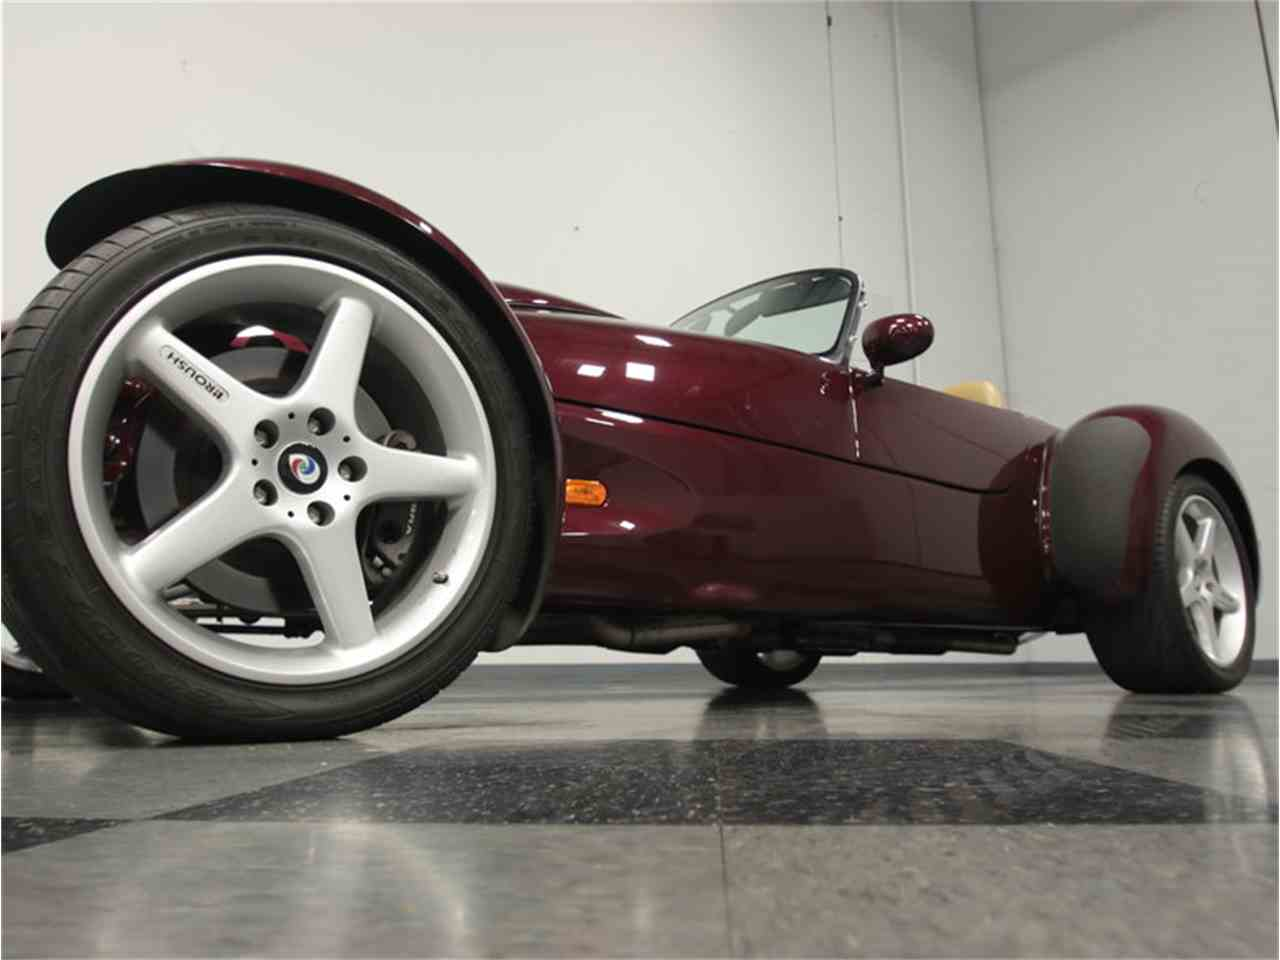 Large Picture of '98 AIV Roadster Supercharged - $41,995.00 - JPDH